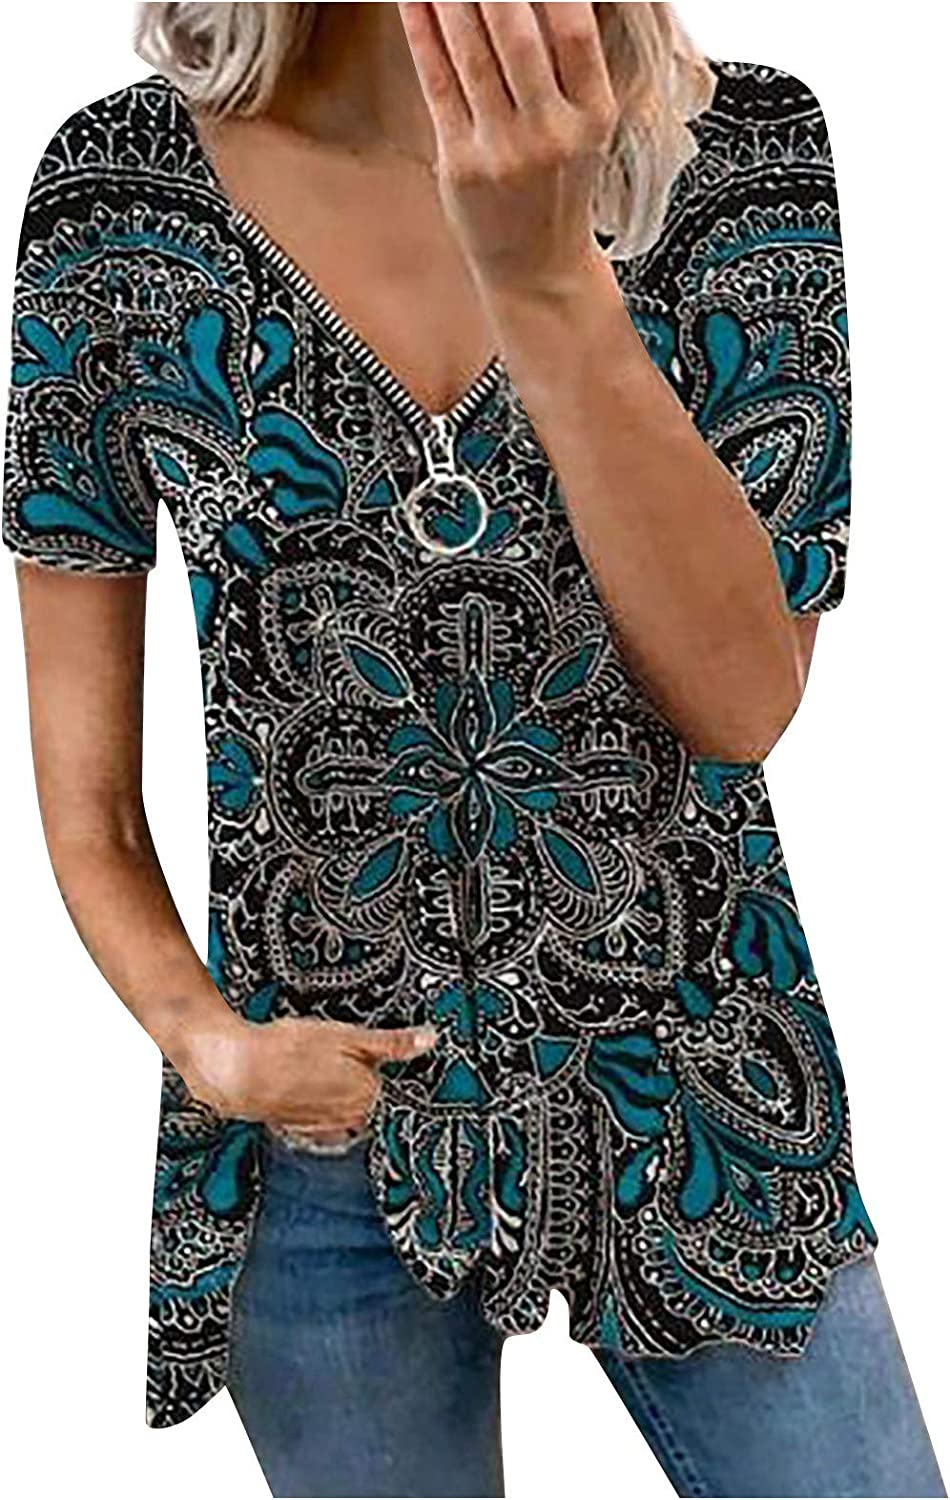 Litetao Women's Paisley Printed Pleated Blouse Shirt Casual Max 47% Ranking TOP7 OFF Zip